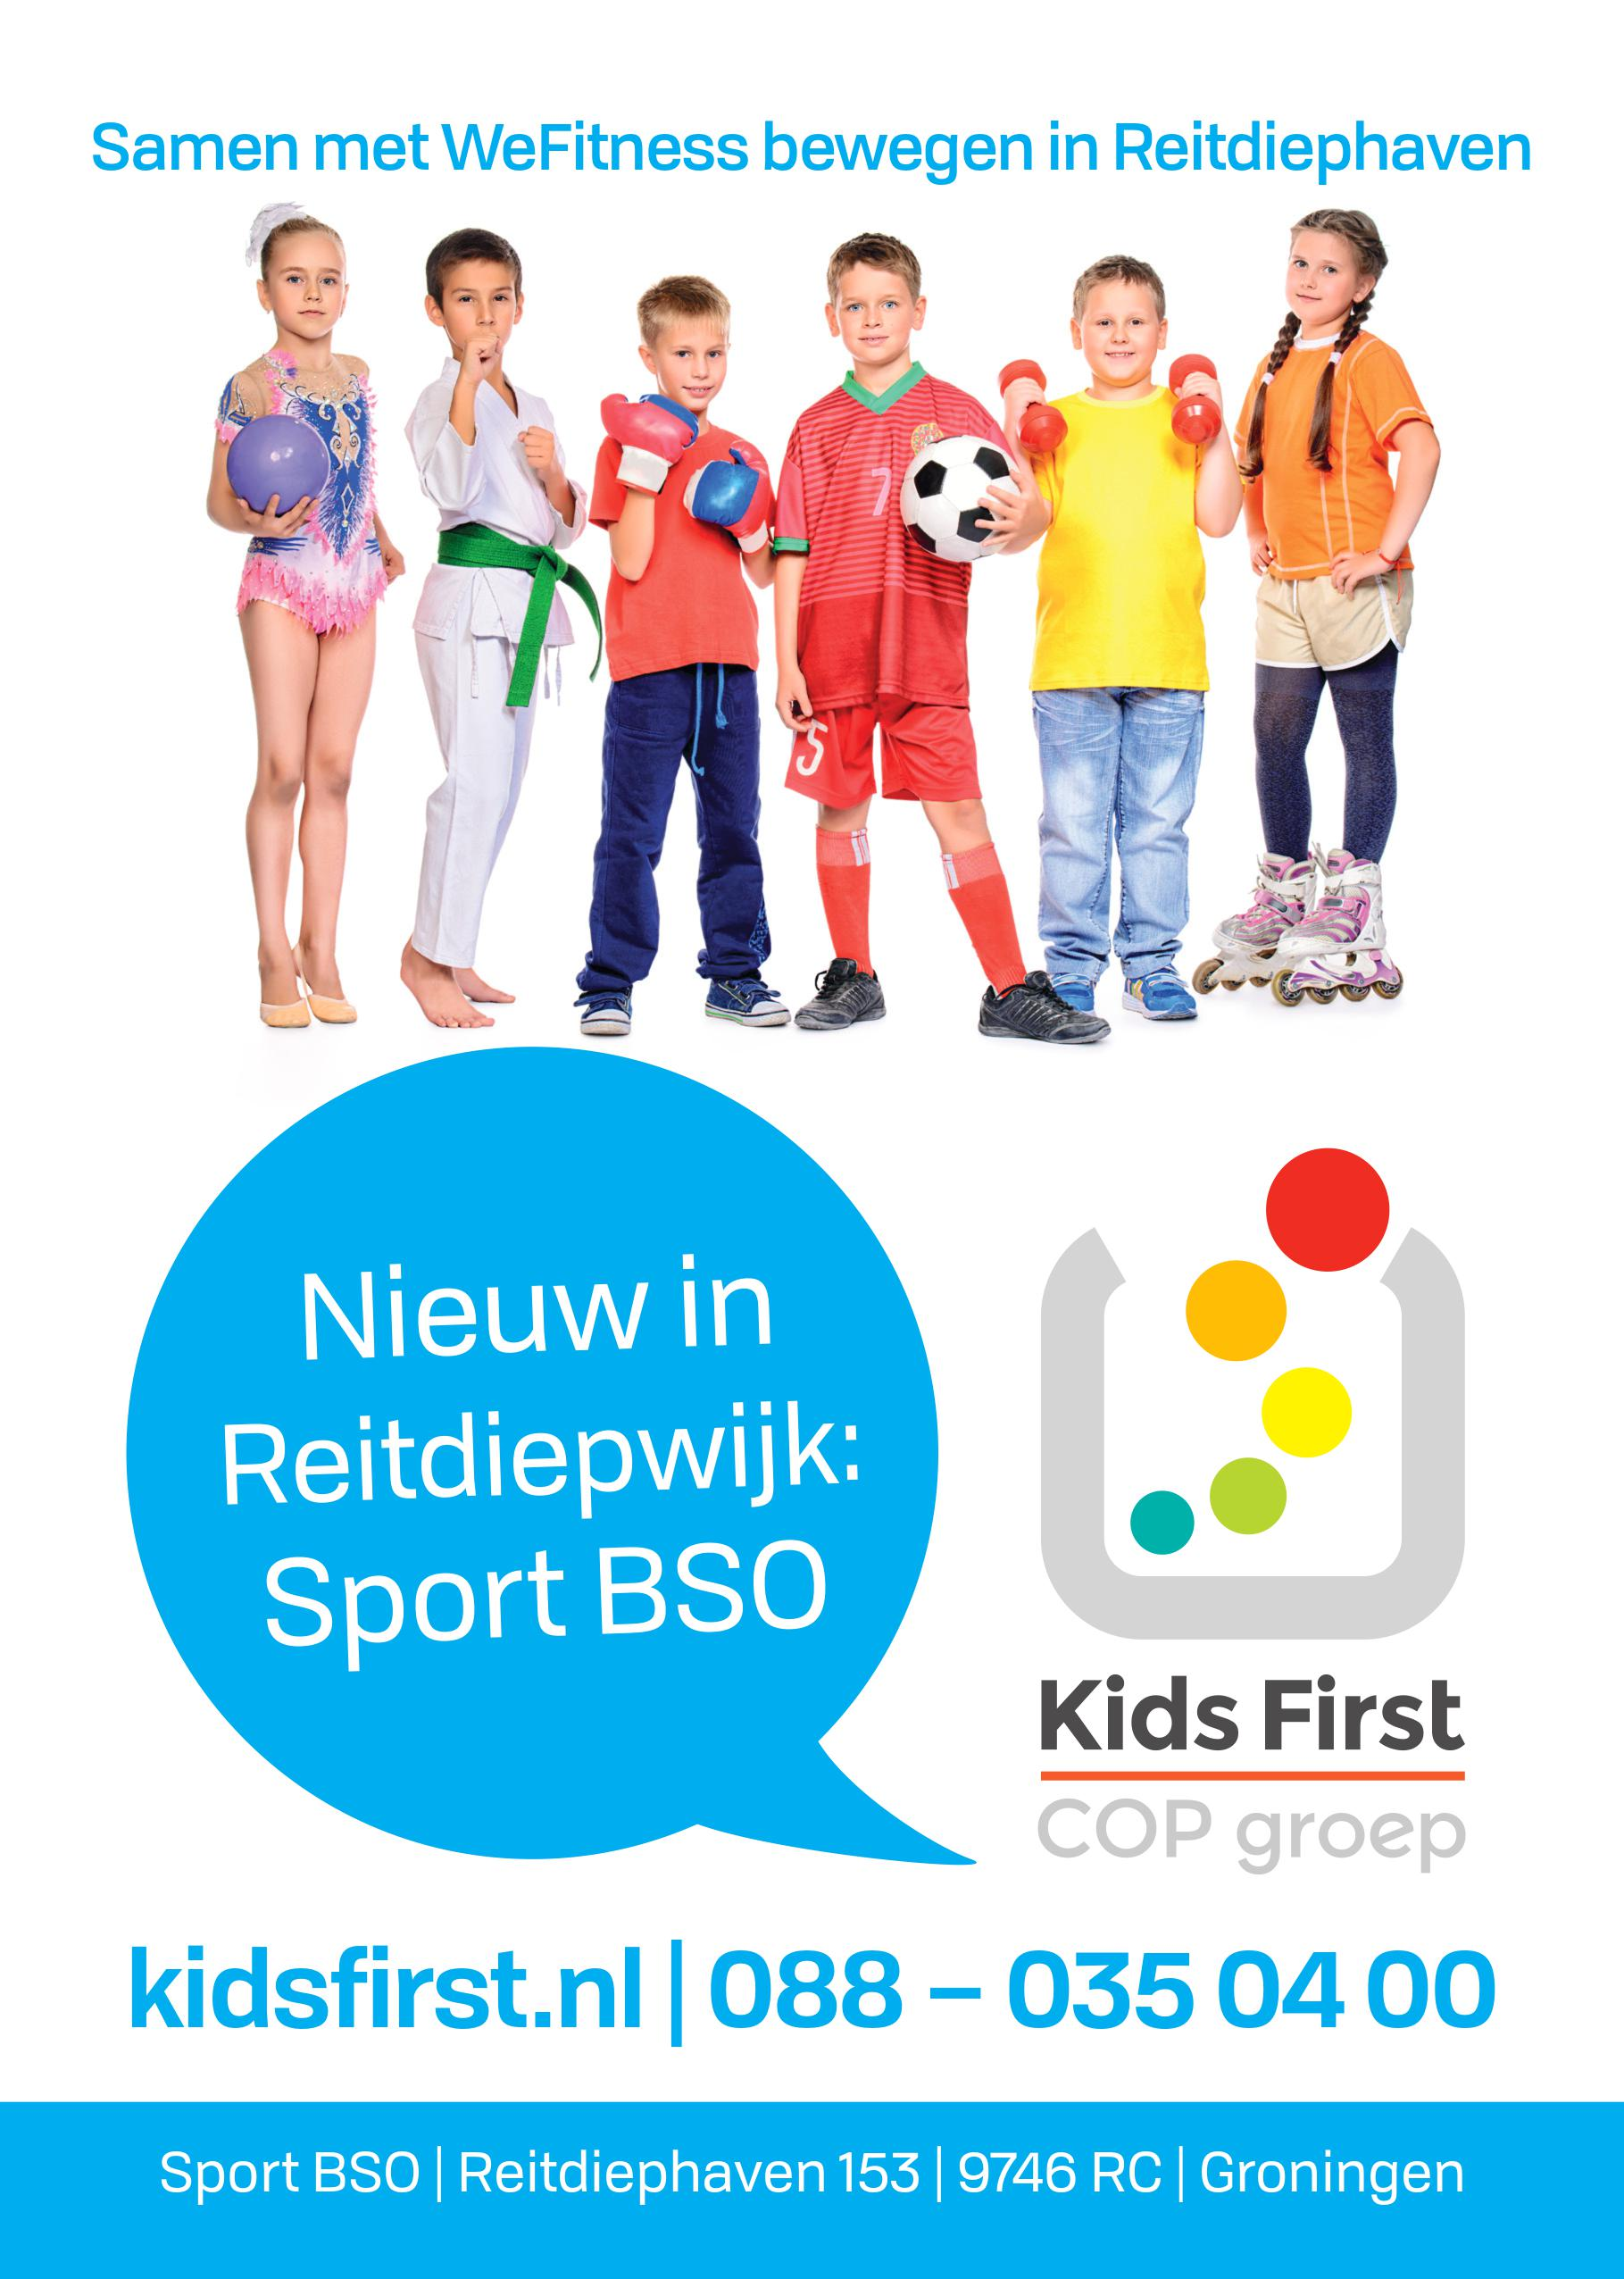 SPORT BSO Reitdiephaven - WeFitness Kids First COP groep